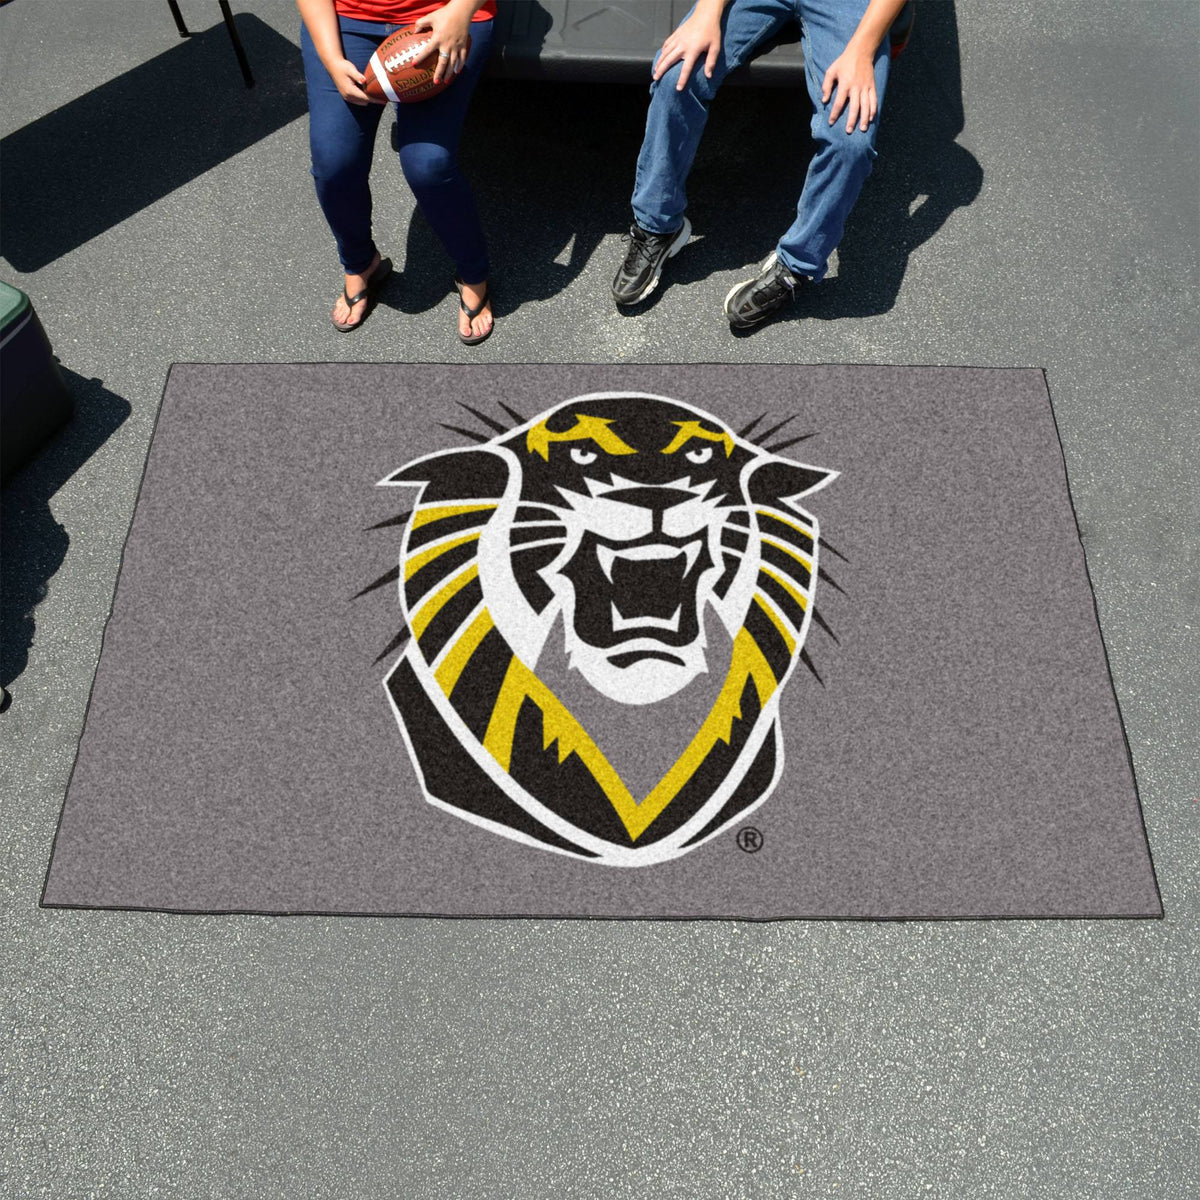 Collegiate - Ulti-Mat: A - L Collegiate Mats, Rectangular Mats, Ulti-Mat, Collegiate, Home Fan Mats Fort Hays State